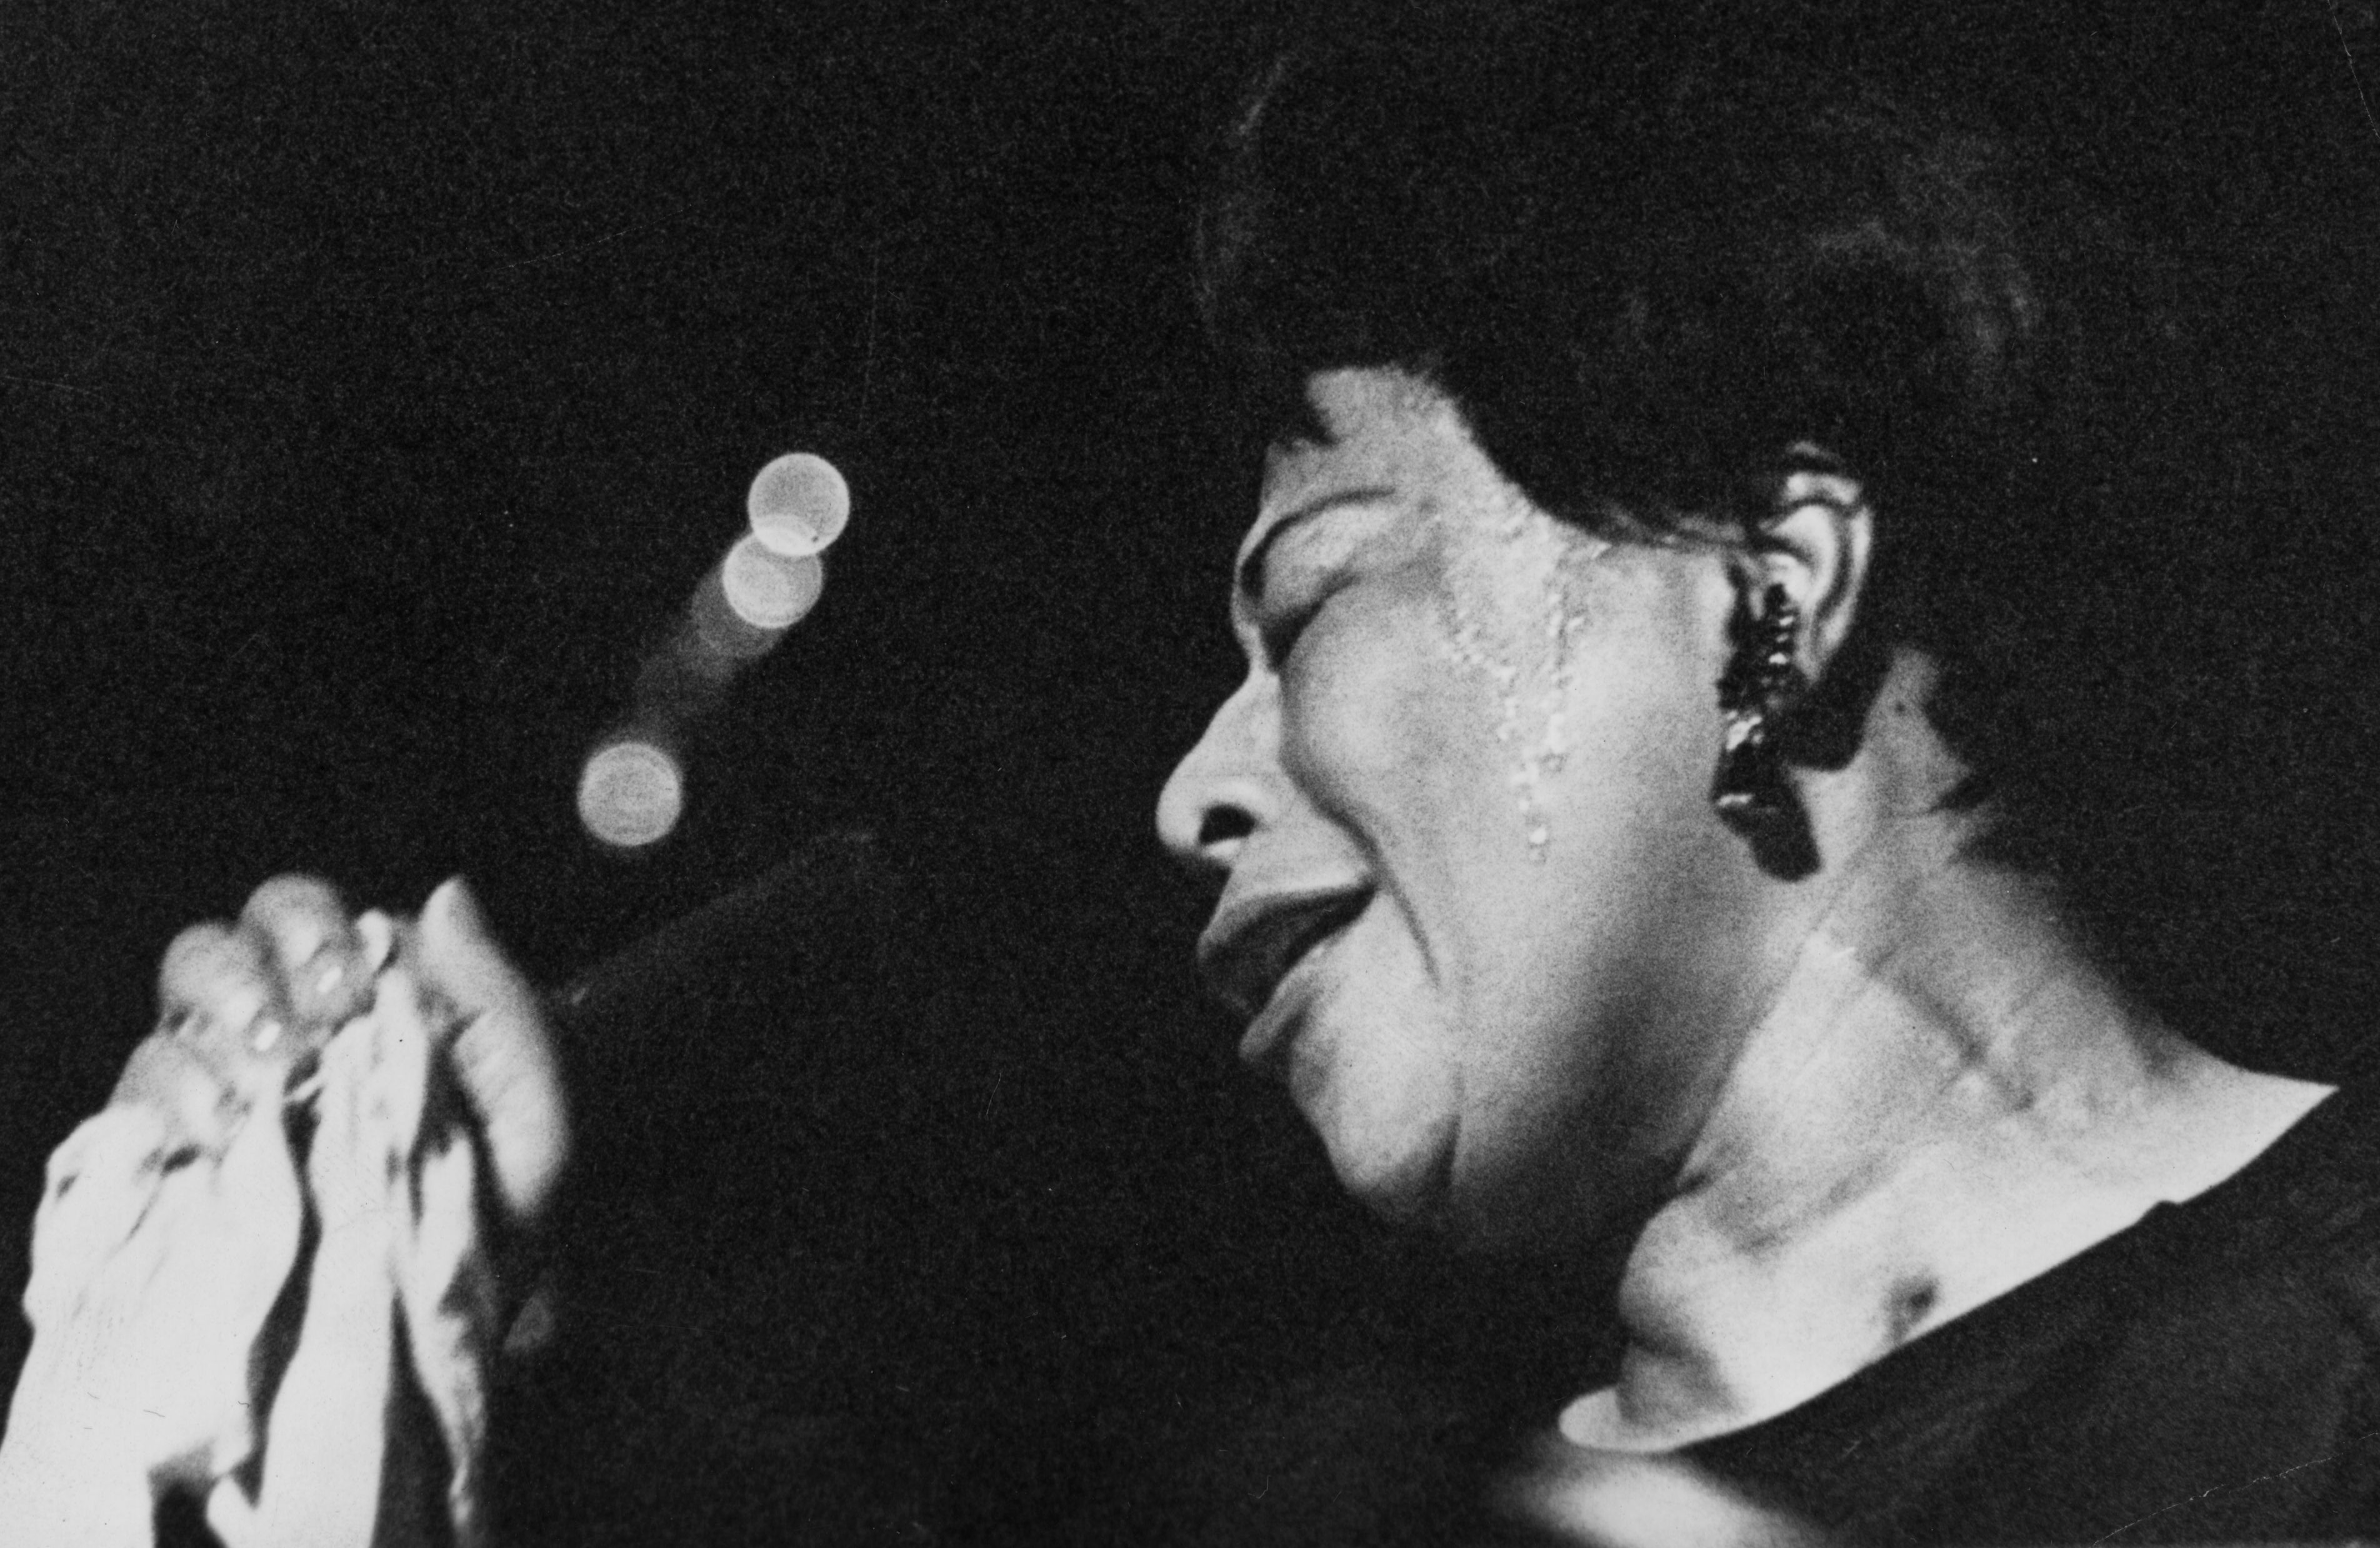 Wednesday When It Was Music Ella Fitzgerald Blues In The Night furthermore Strictly Gershwin The Capitol Horsham Fri 31st Oct likewise Julie Andrews 5384 further St Albans Jazz Greats Queens as well Audrey Hepburn Funny Face 1957 Starring Fred Astaire. on ira gershwin